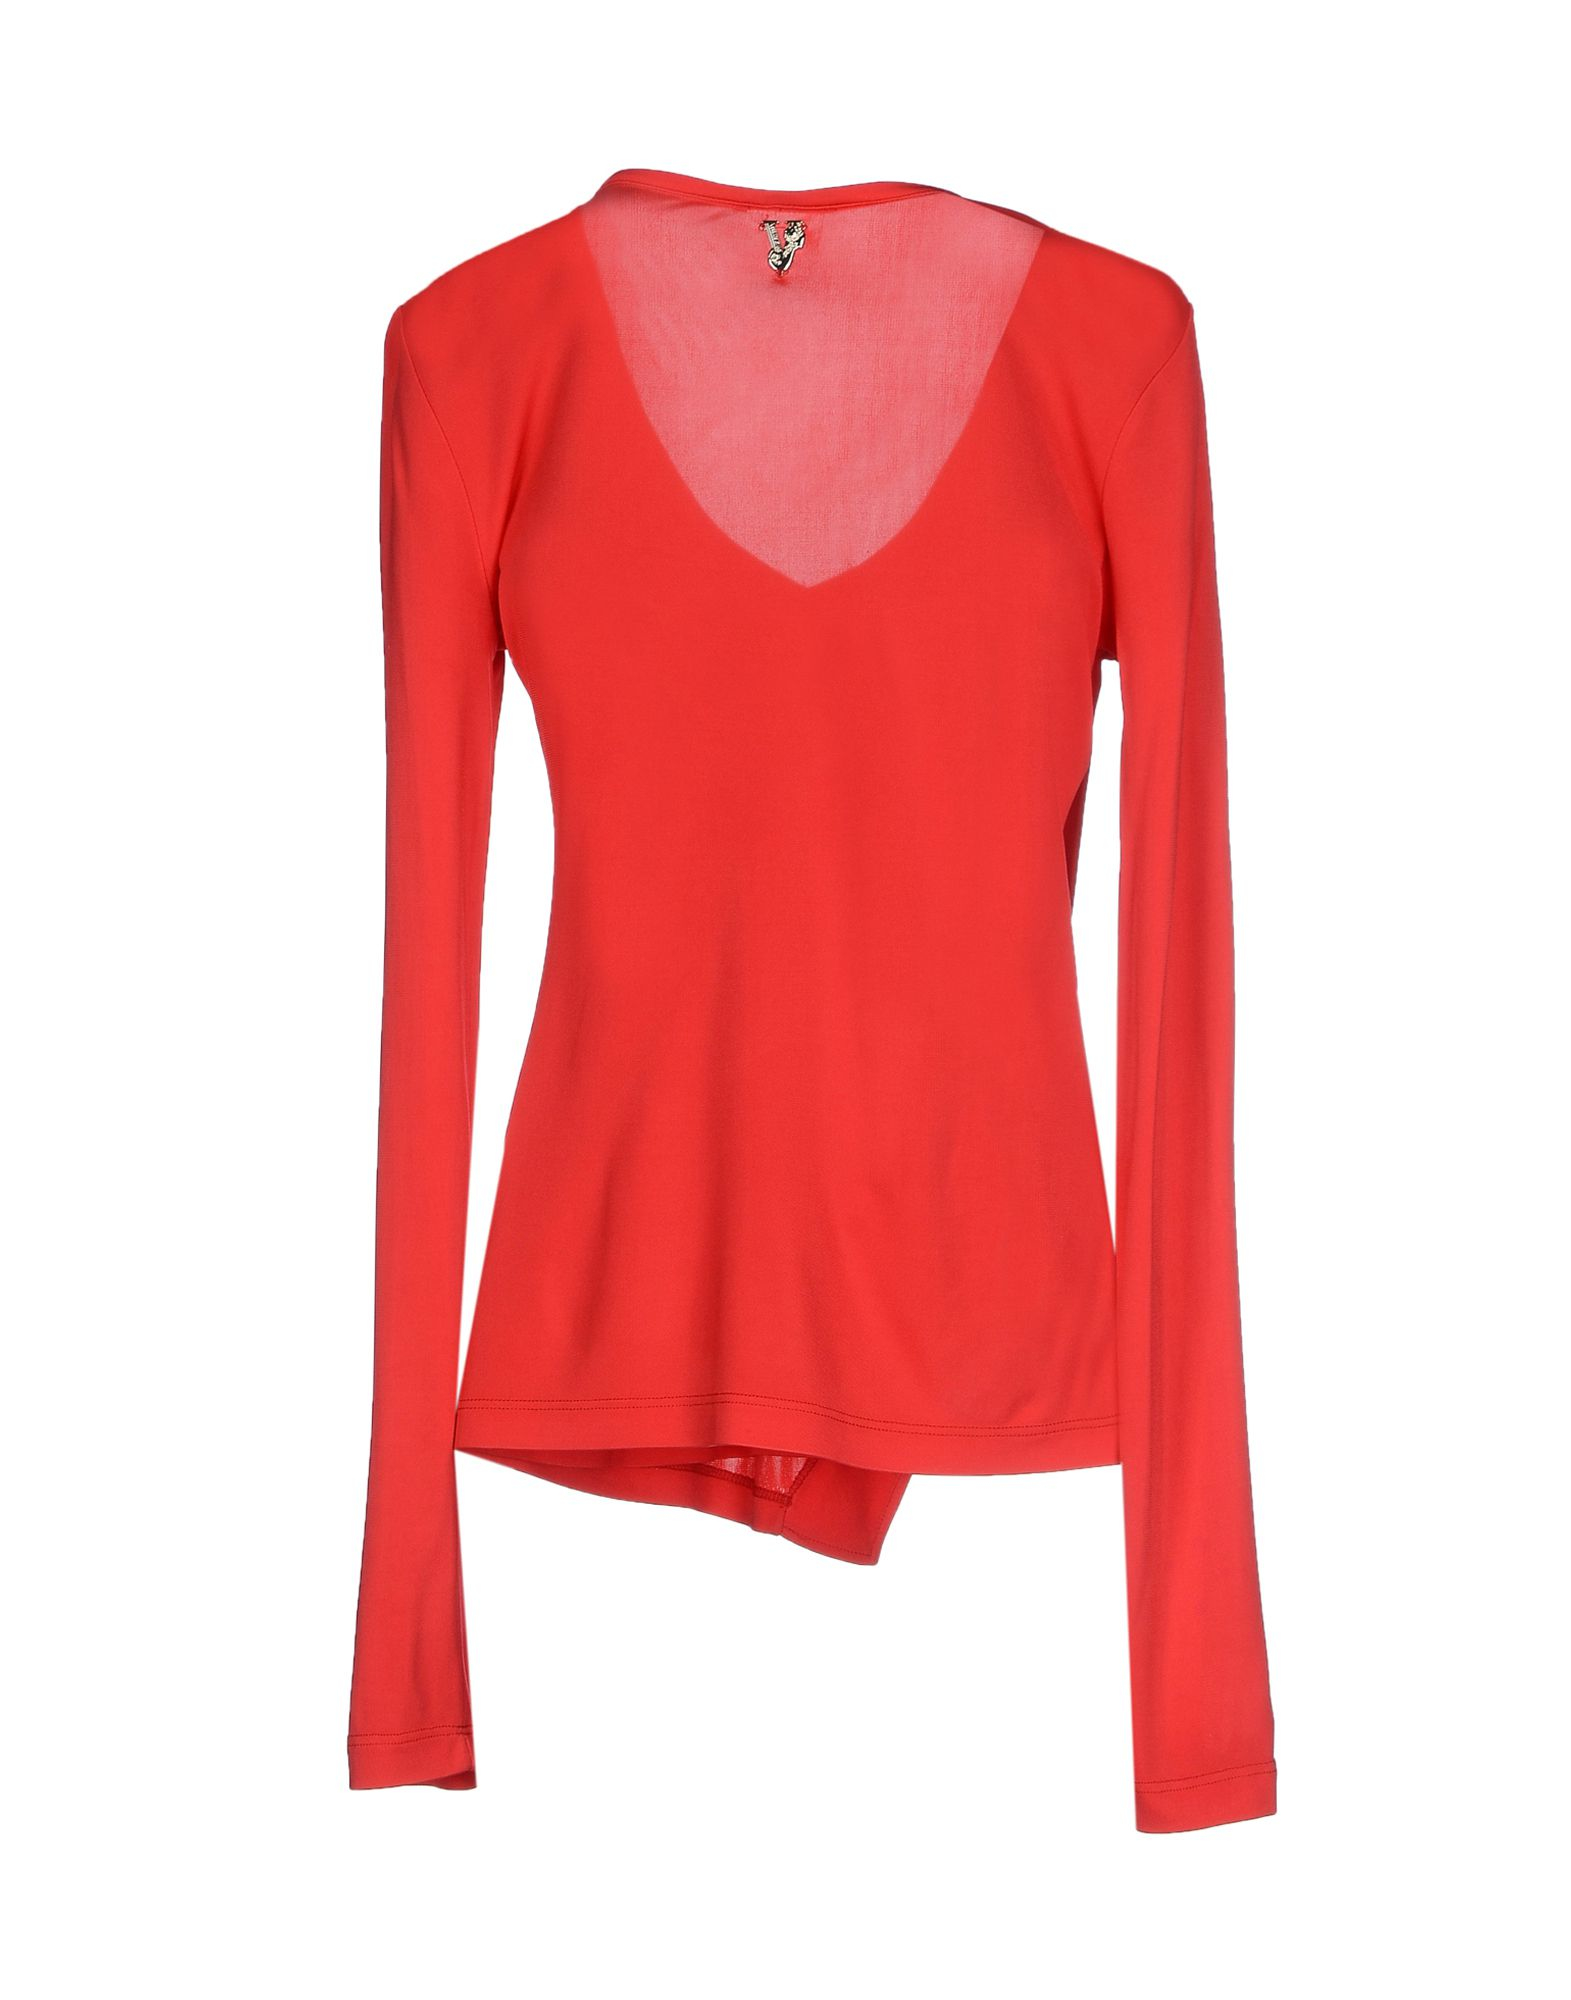 Lyst versace jeans t shirt in red for Versace t shirts women